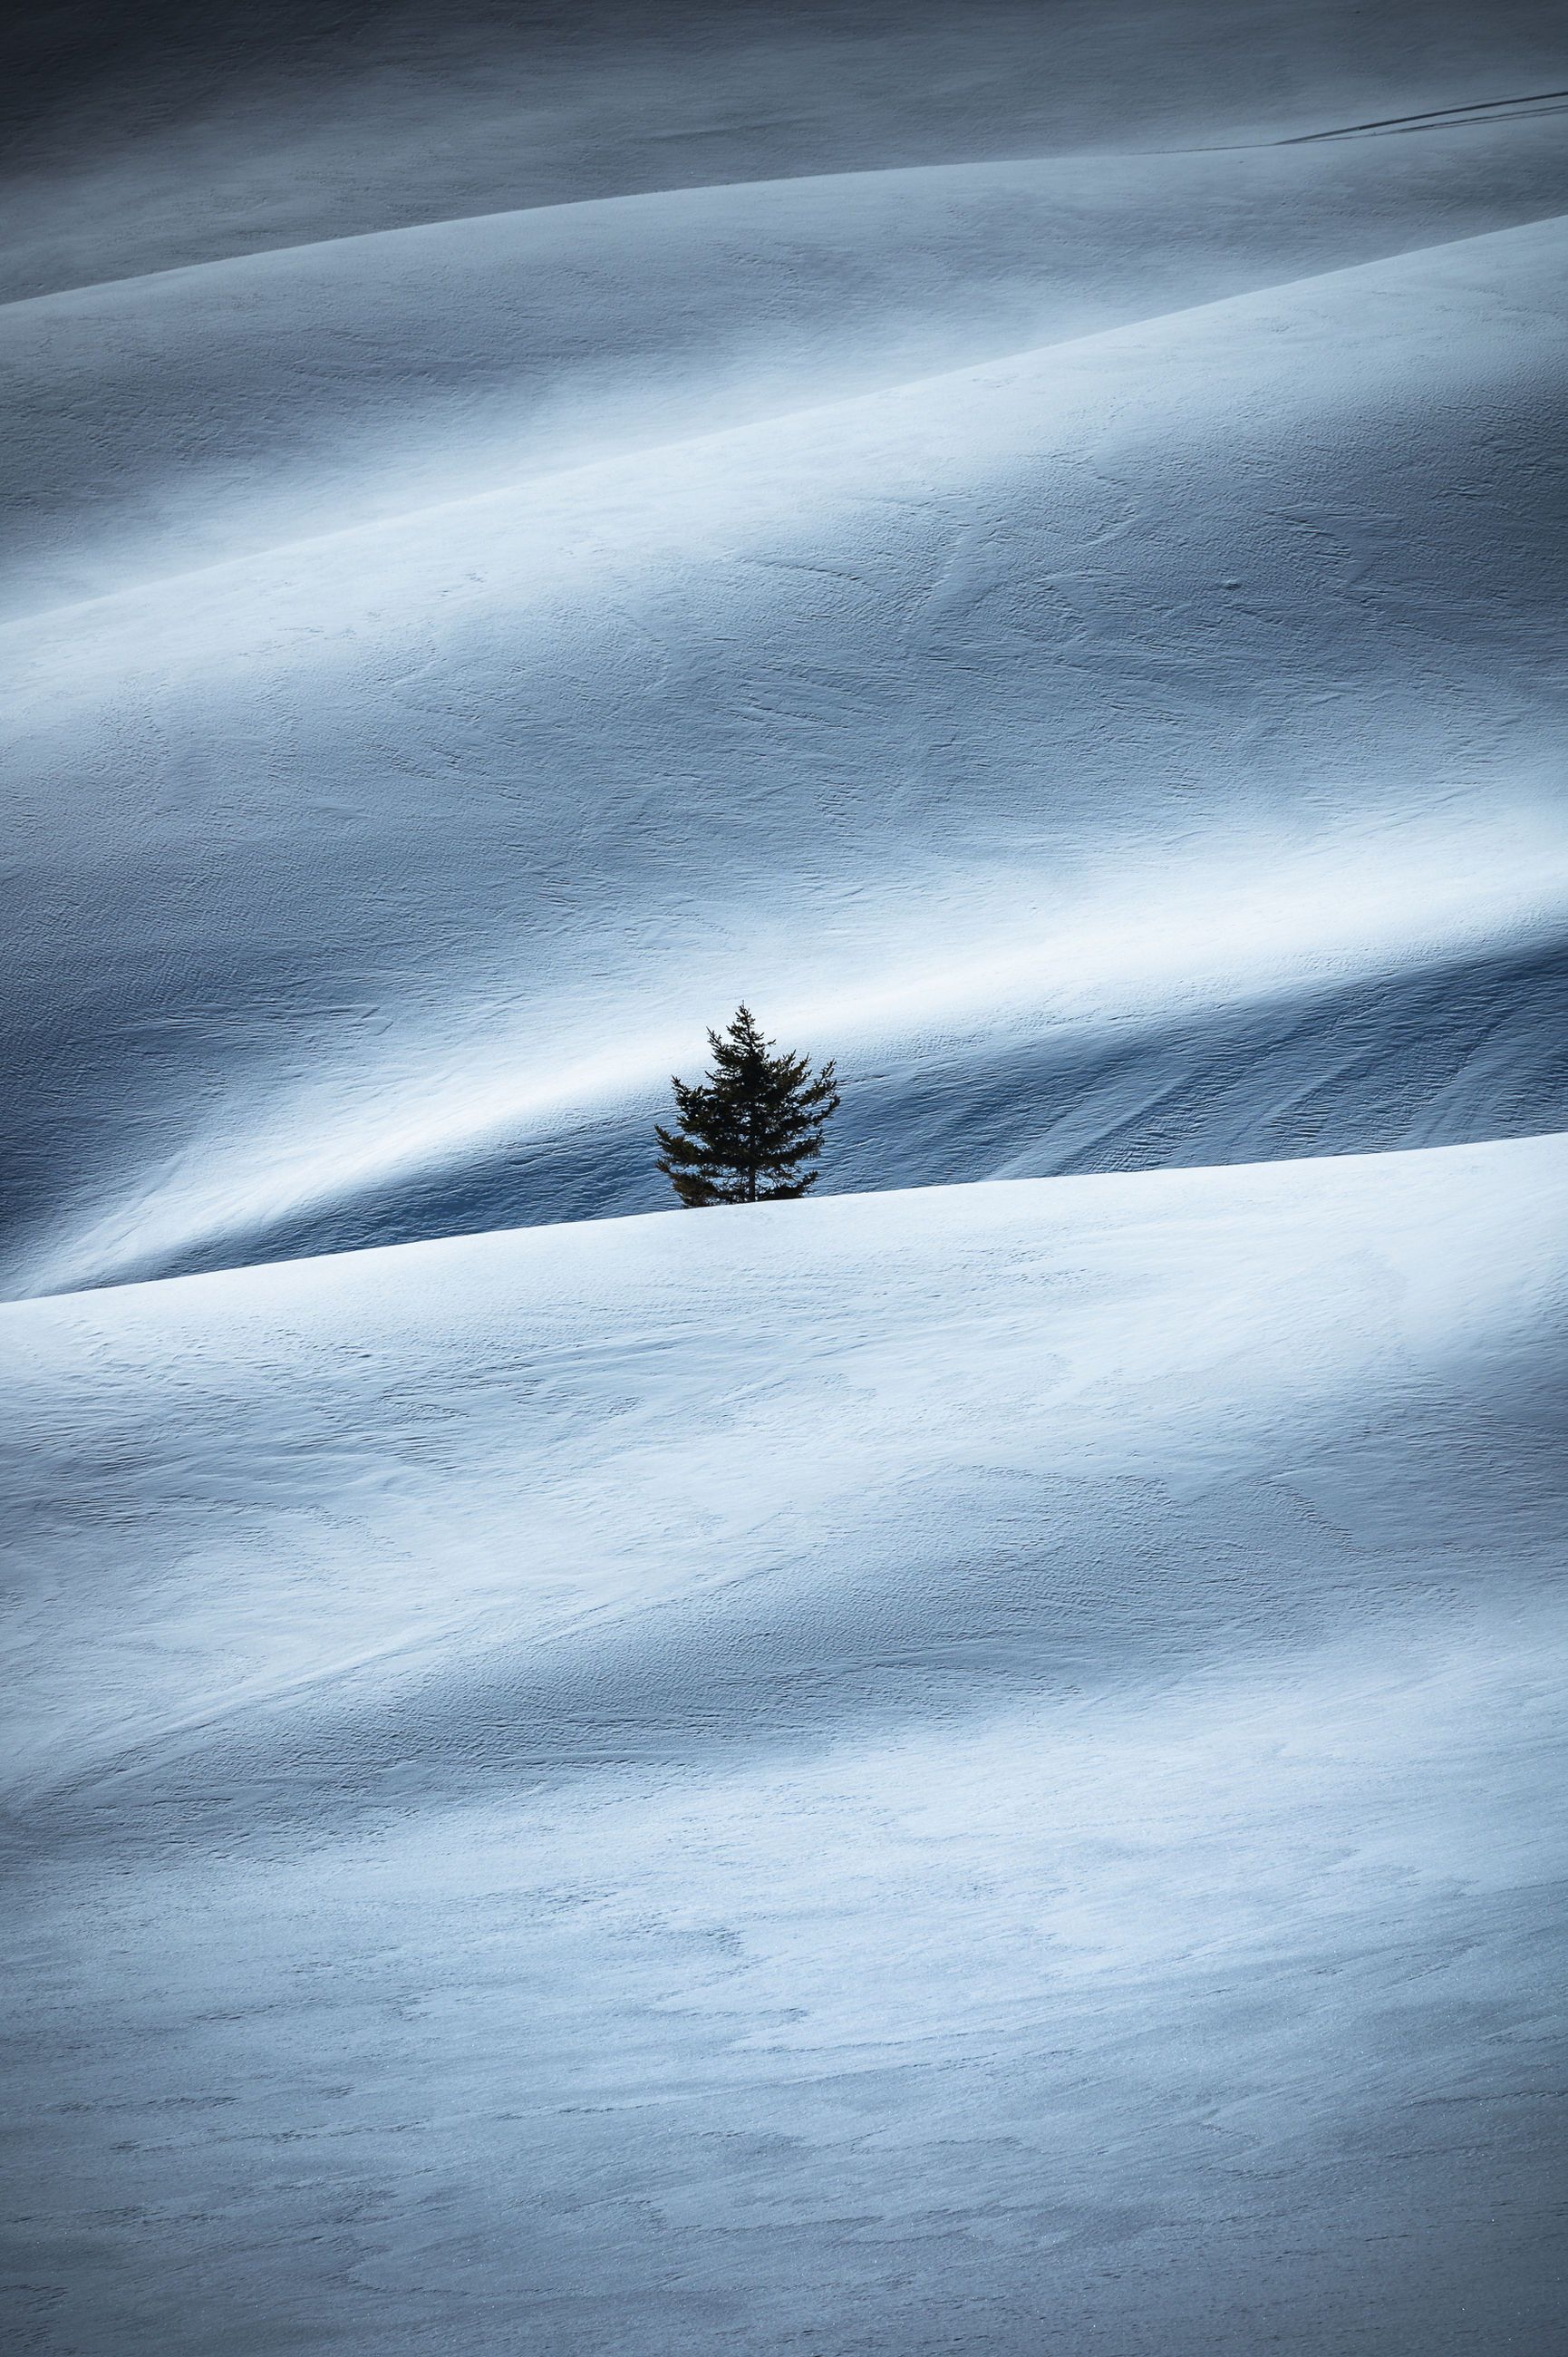 tree, tranquility, scenics - nature, winter, plant, snow, land, beauty in nature, nature, cold temperature, tranquil scene, no people, environment, landscape, day, non-urban scene, field, sky, outdoors, climate